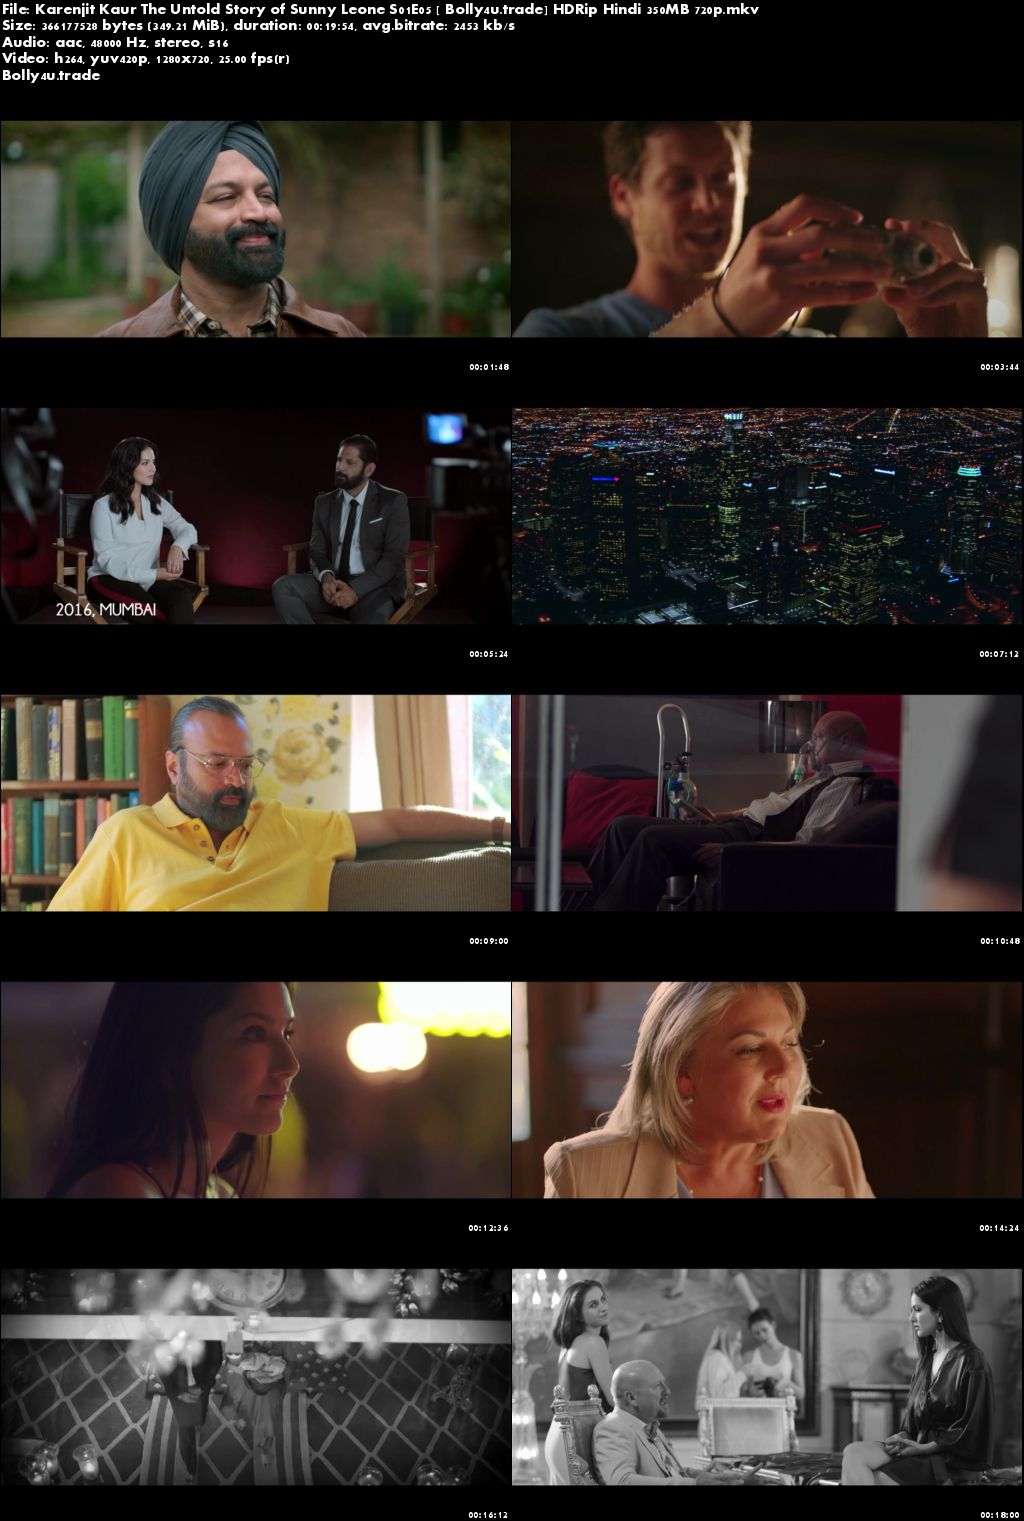 Karenjit Kaur The Untold Story of Sunny Leone S01E05 HDRip 350MB Hindi 720p Download